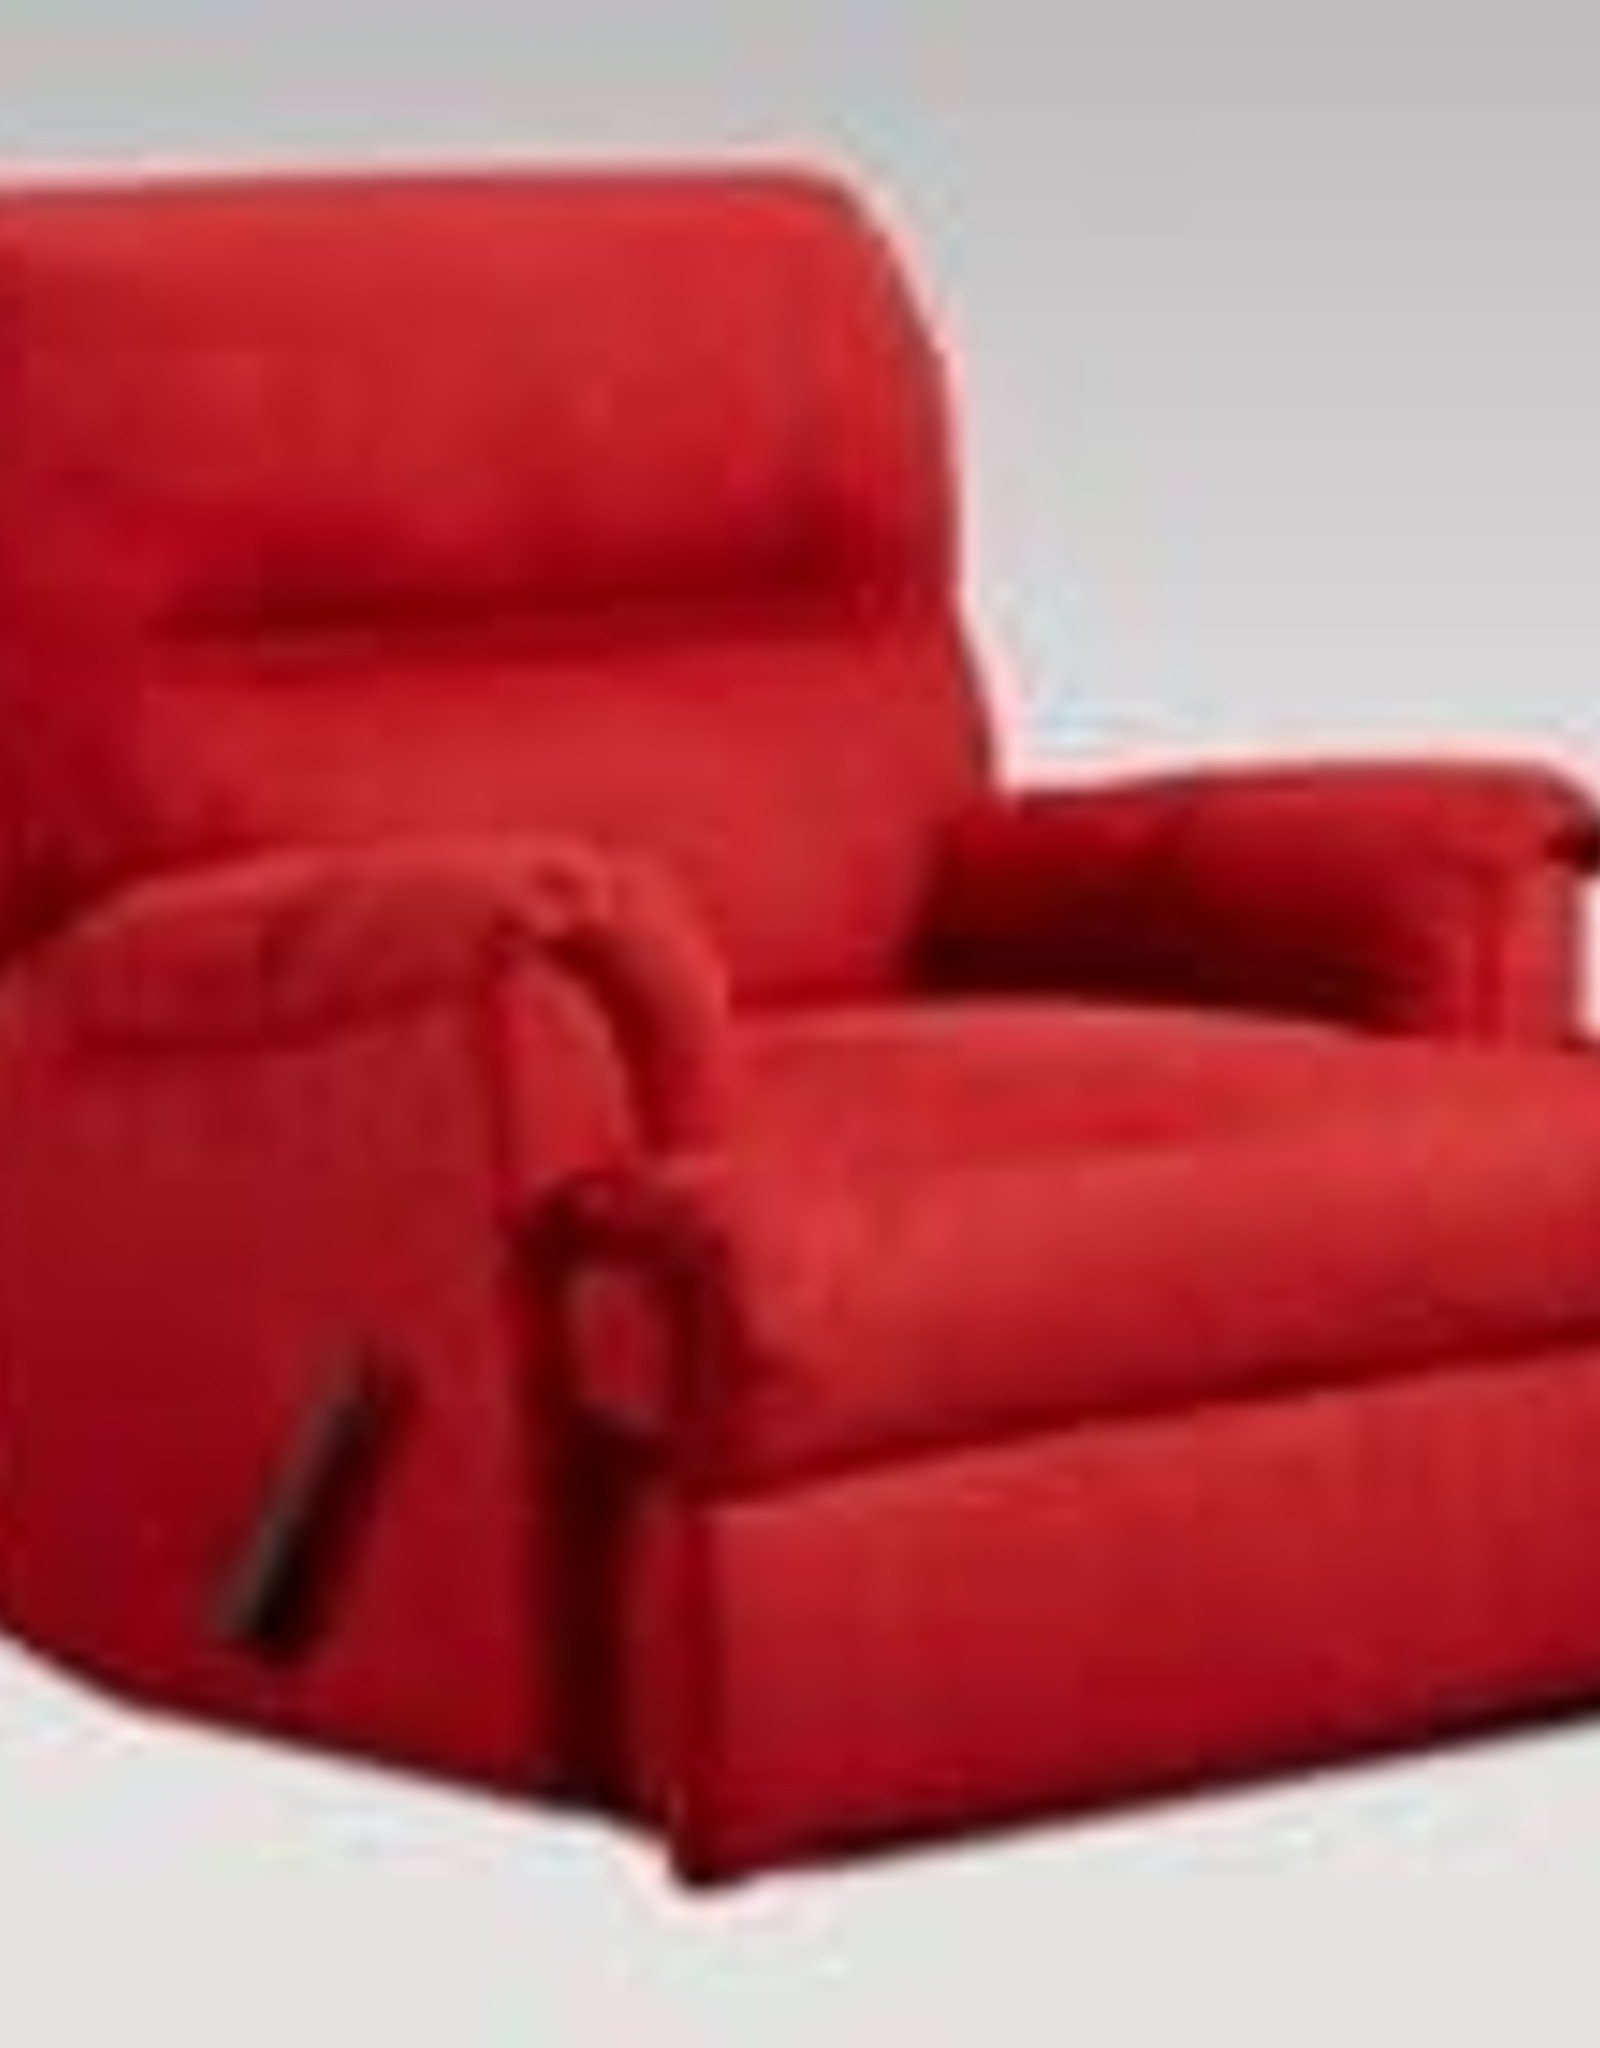 Affordable Furniture Sensation Red Brick Recliner